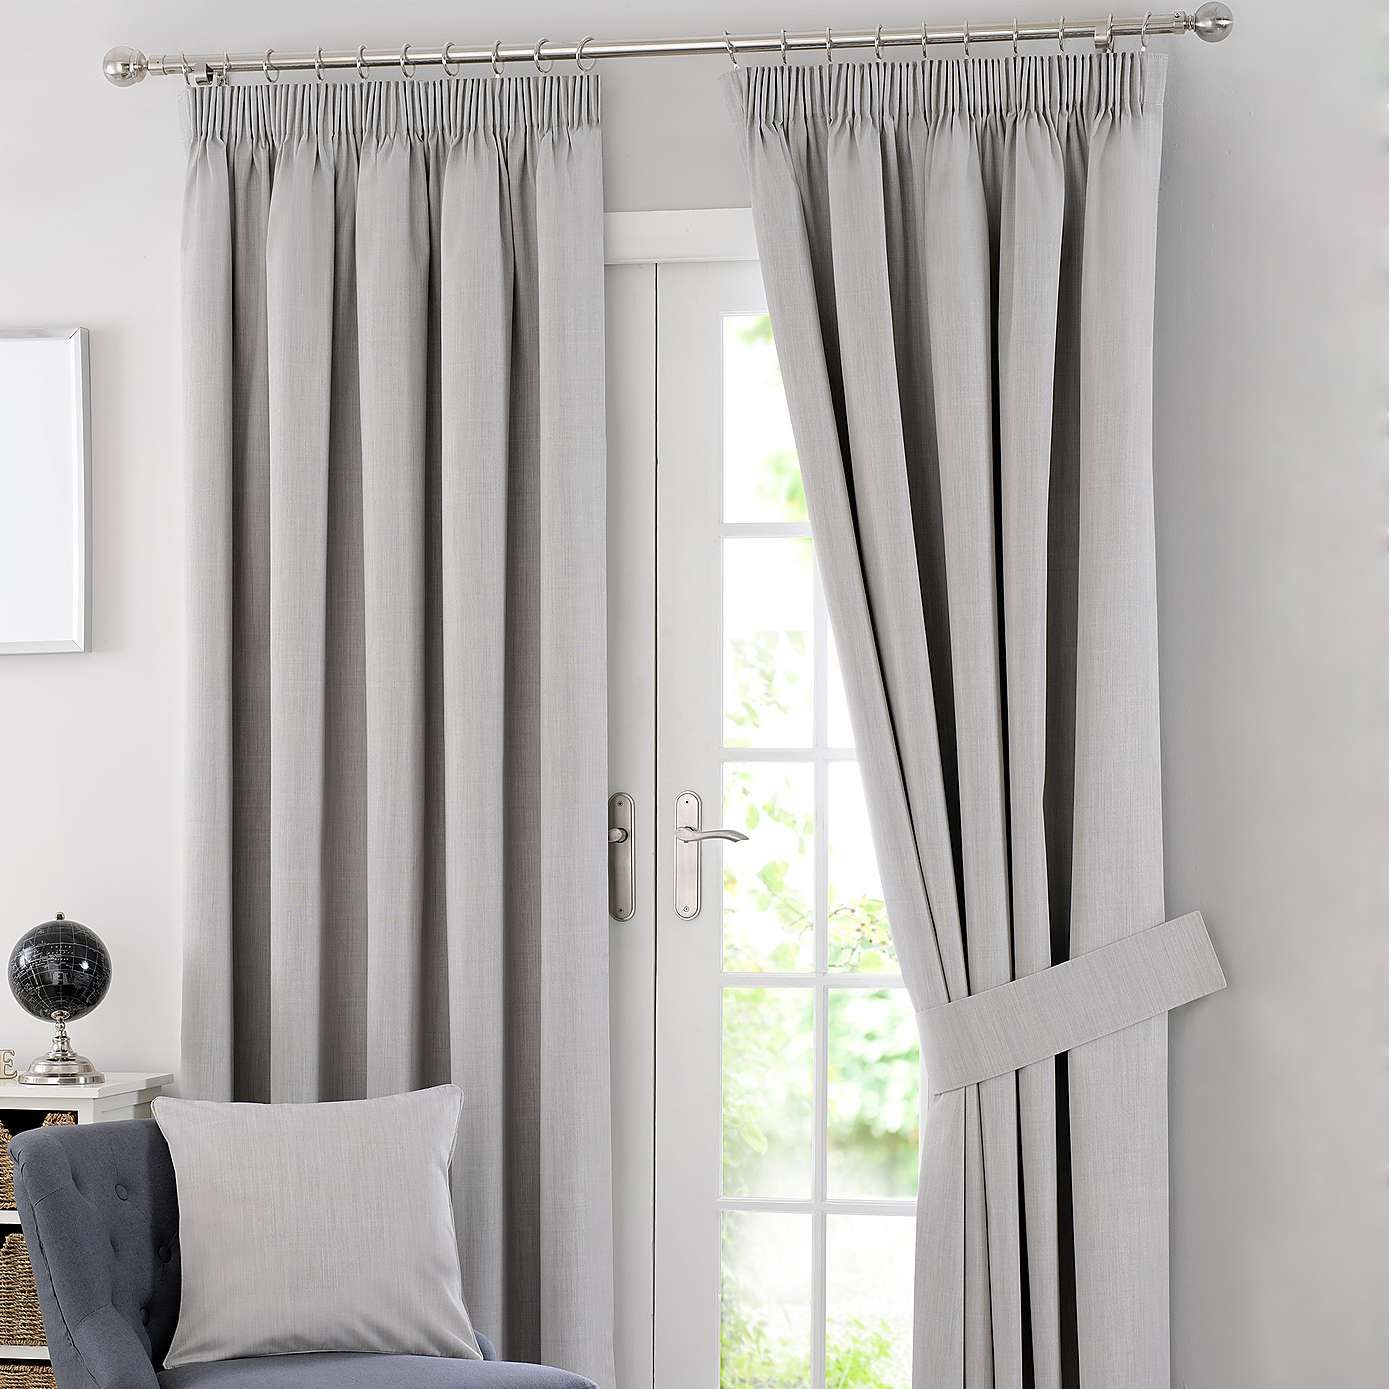 wilkinson curtains grey. Black Bedroom Furniture Sets. Home Design Ideas